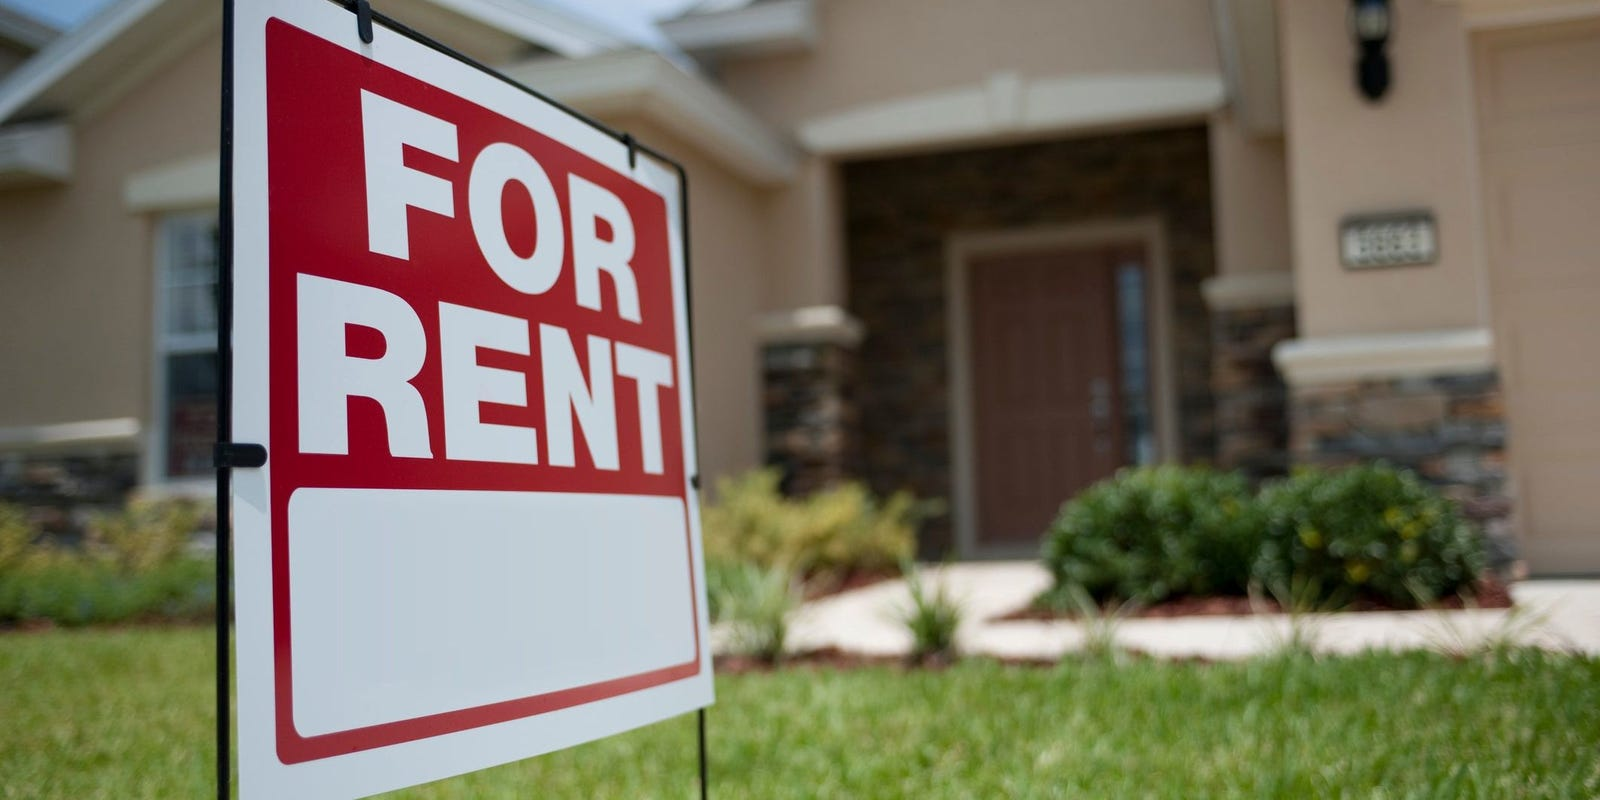 Where rents are rising and falling the most in big cities